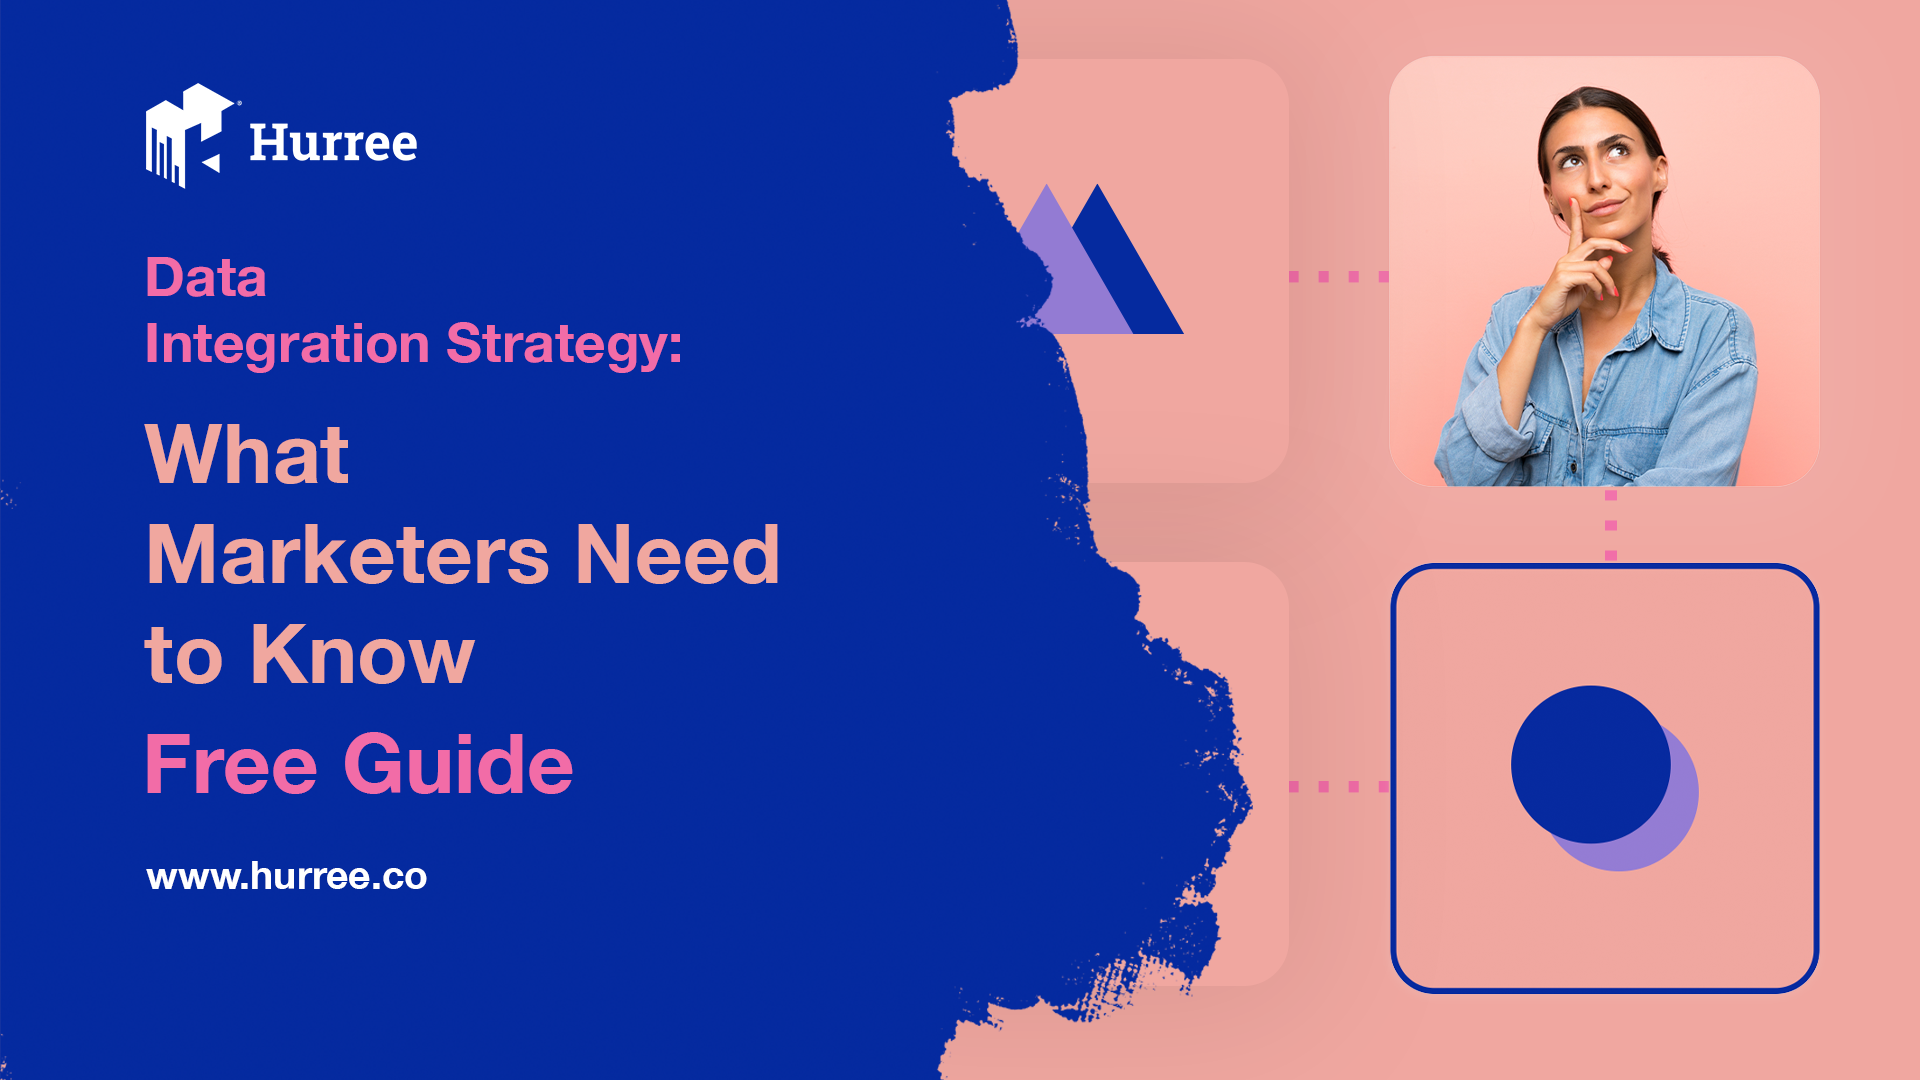 Data Integration Strategy: What Marketers Need to Know